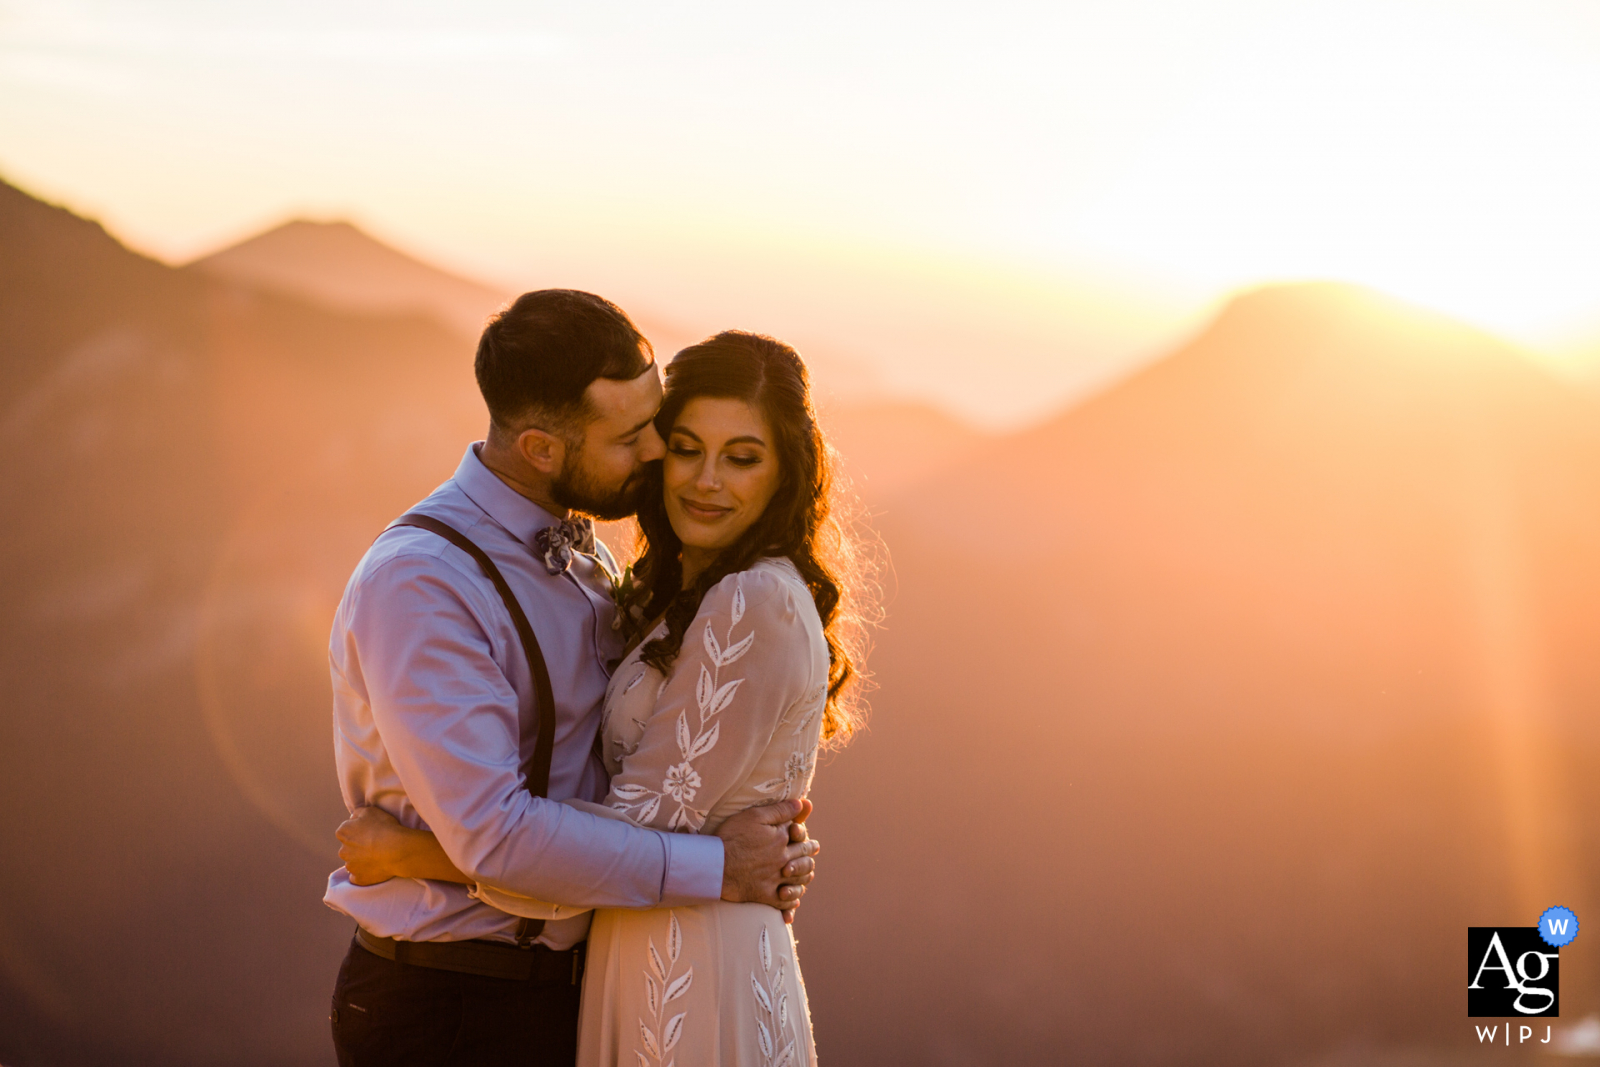 Rocky Mountain National Park wedding portrait of the groom kissing bride's cheek during this sunset session